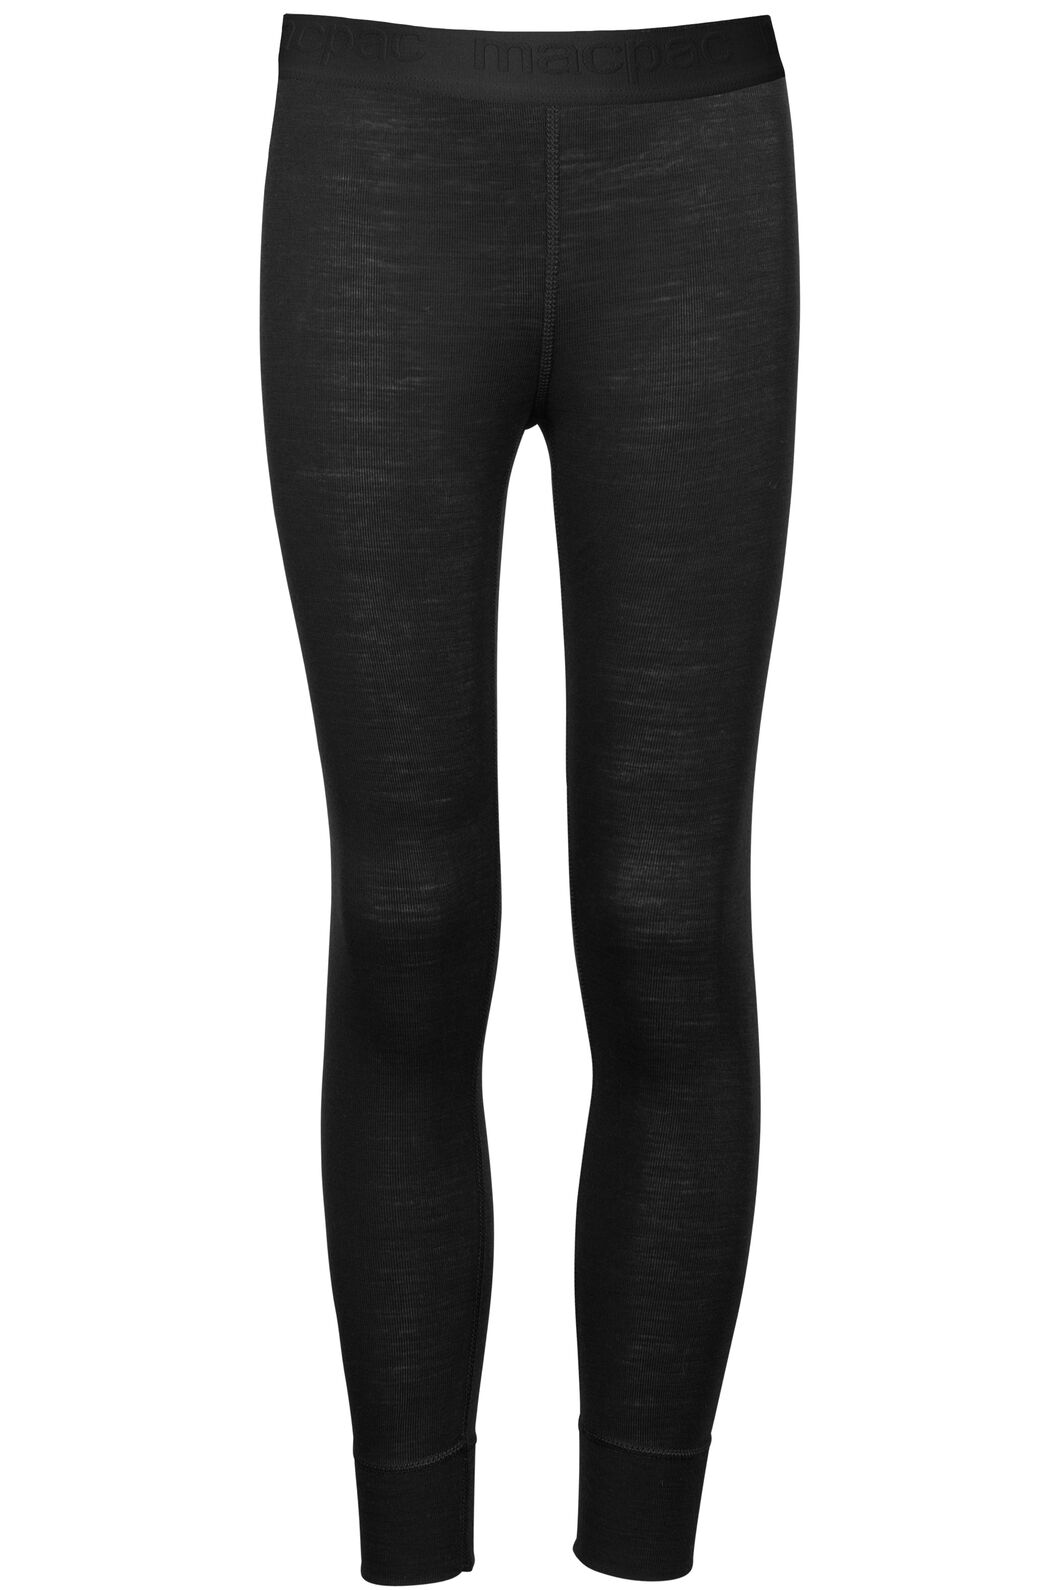 Macpac 220 Merino Long Johns — Kids', Black, hi-res